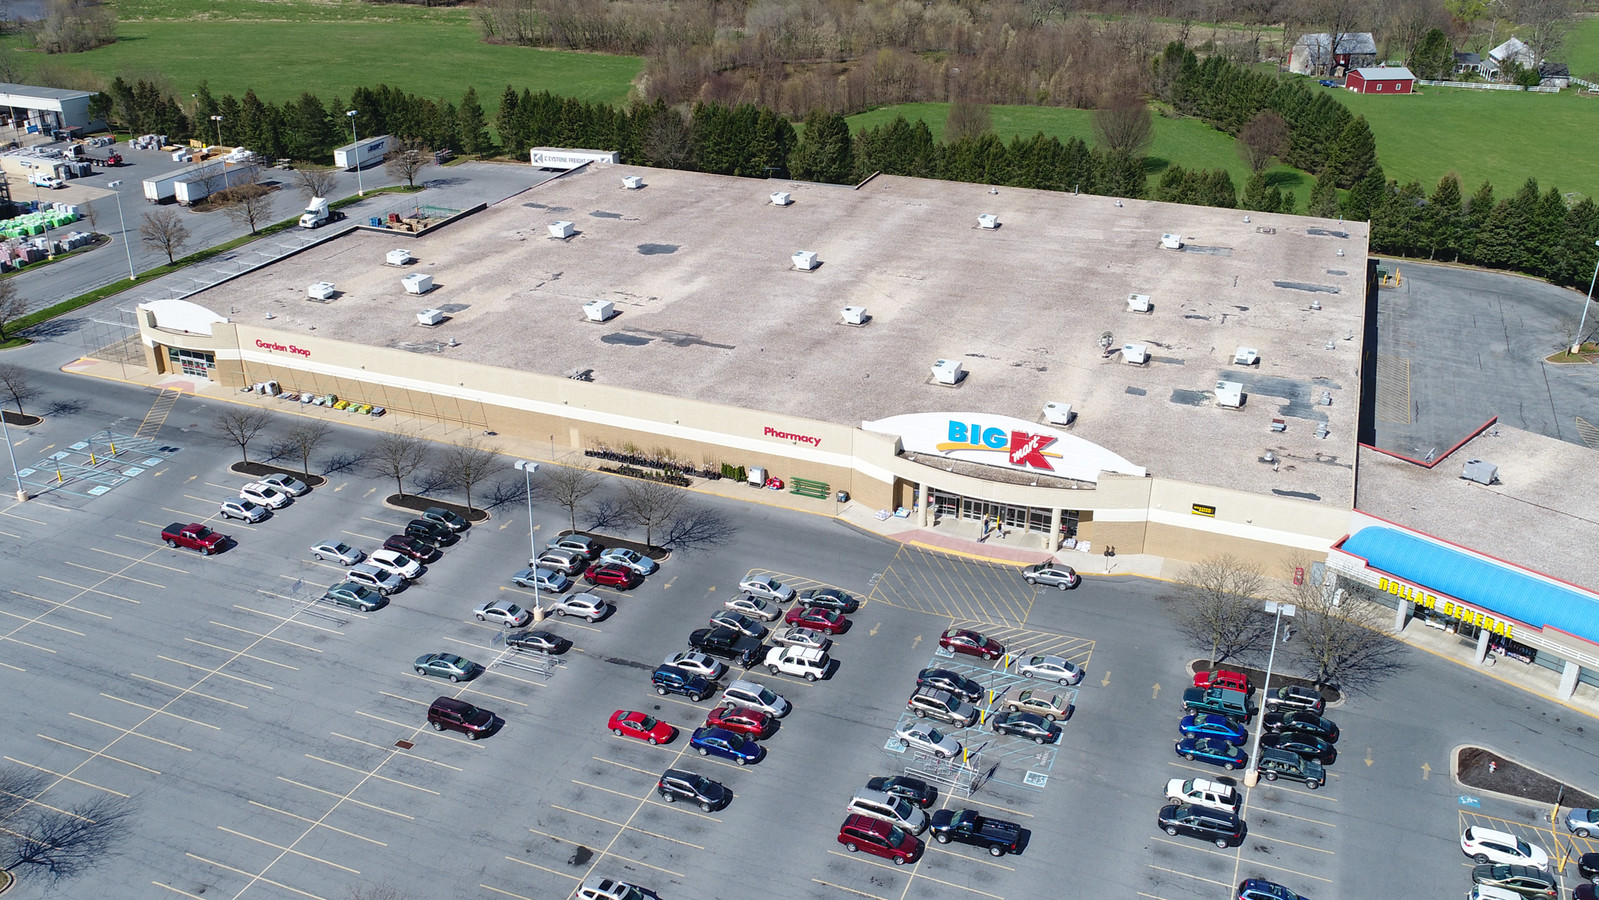 Lebanon Kmart set to close by February, building for sale